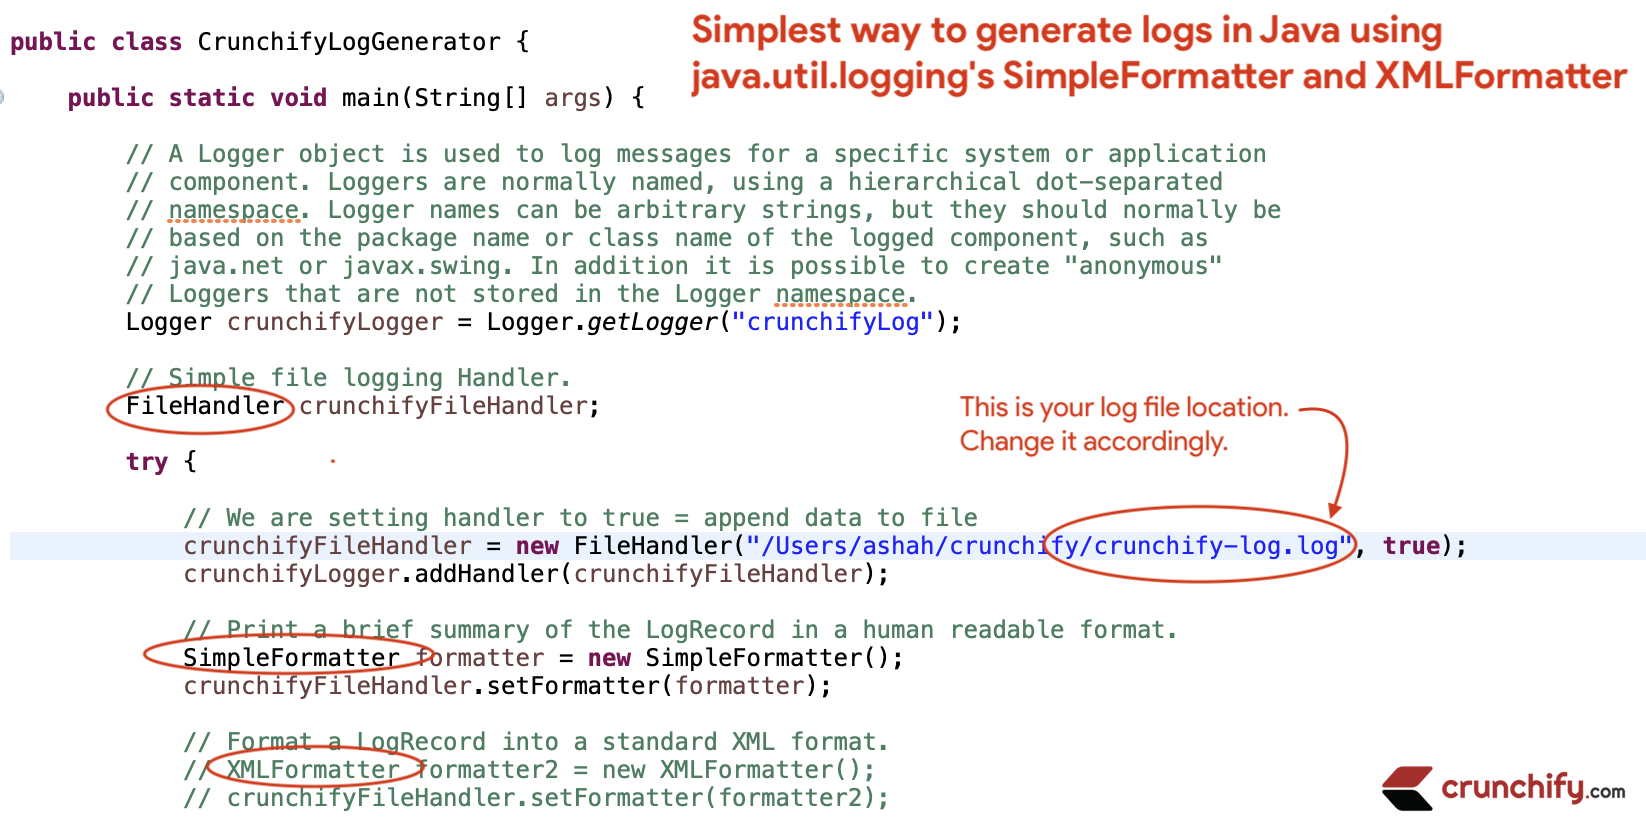 Simplest way to generate logs in Java using java.util.logging's SimpleFormatter, XMLFormatter